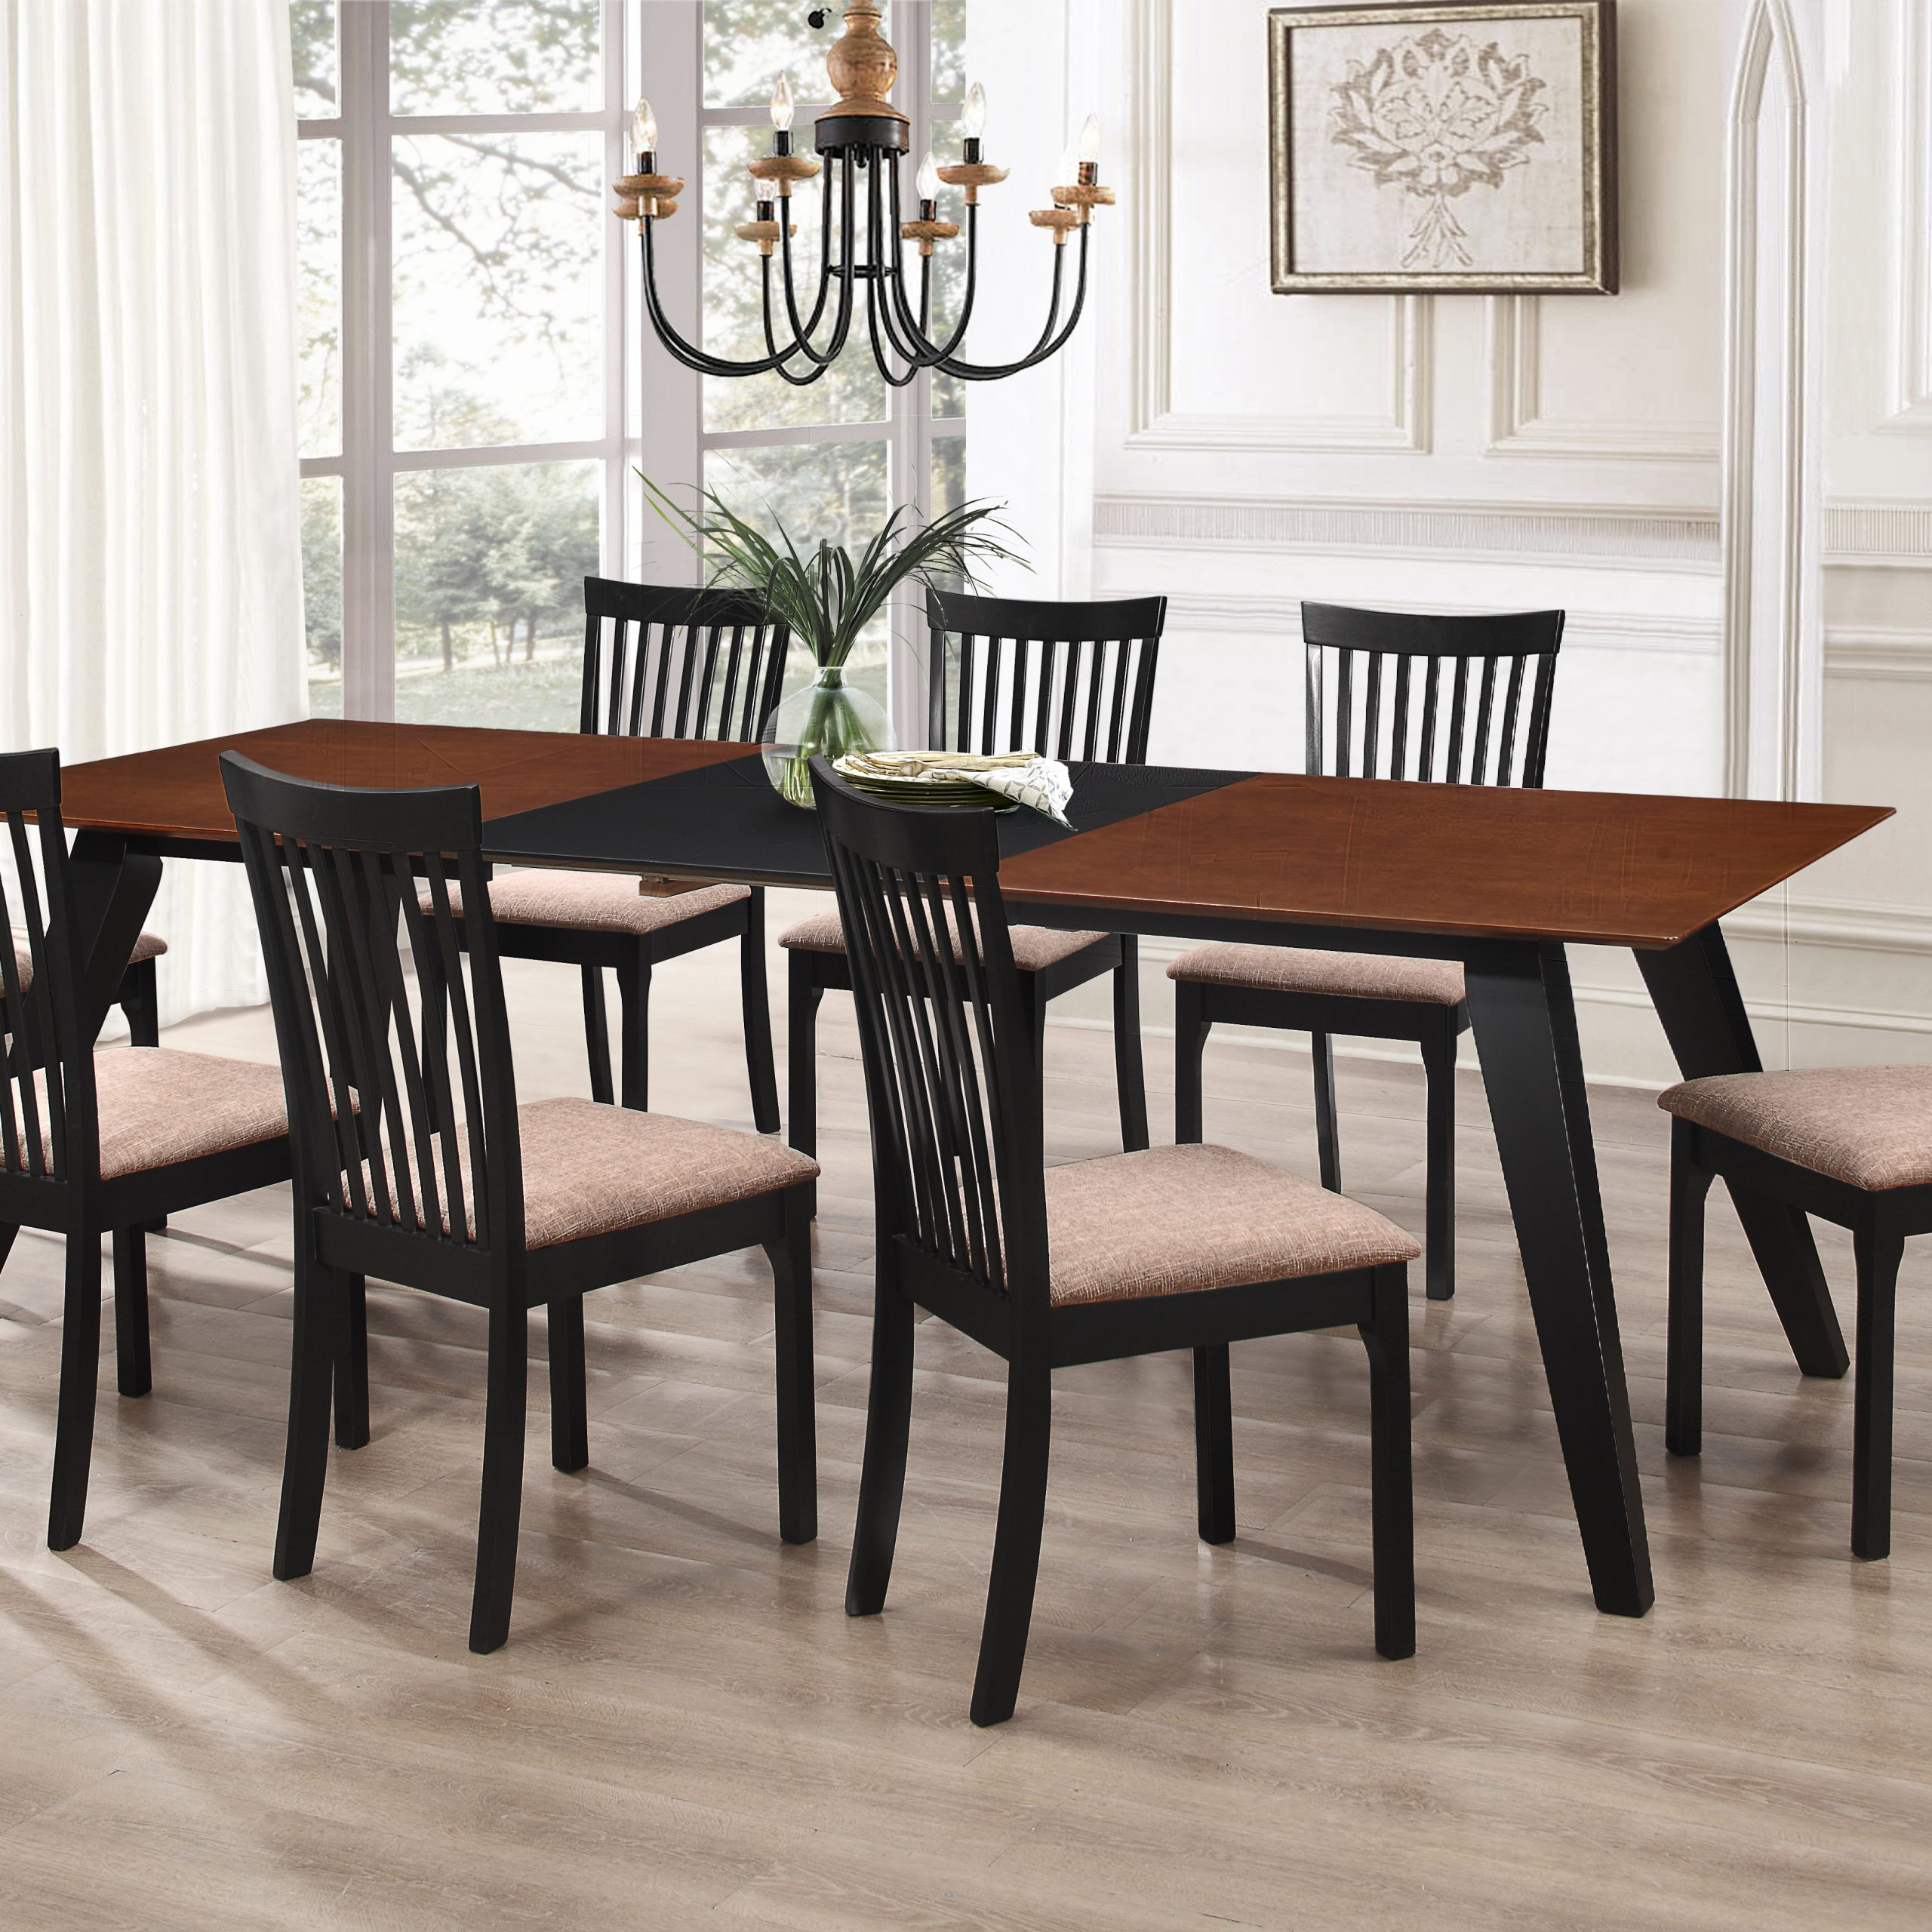 Most Popular Verona 9 Piece Formal Dining Room Set, Walnut Black Wood Pertaining To 8 Seater Wood Contemporary Dining Tables With Extension Leaf (View 14 of 25)